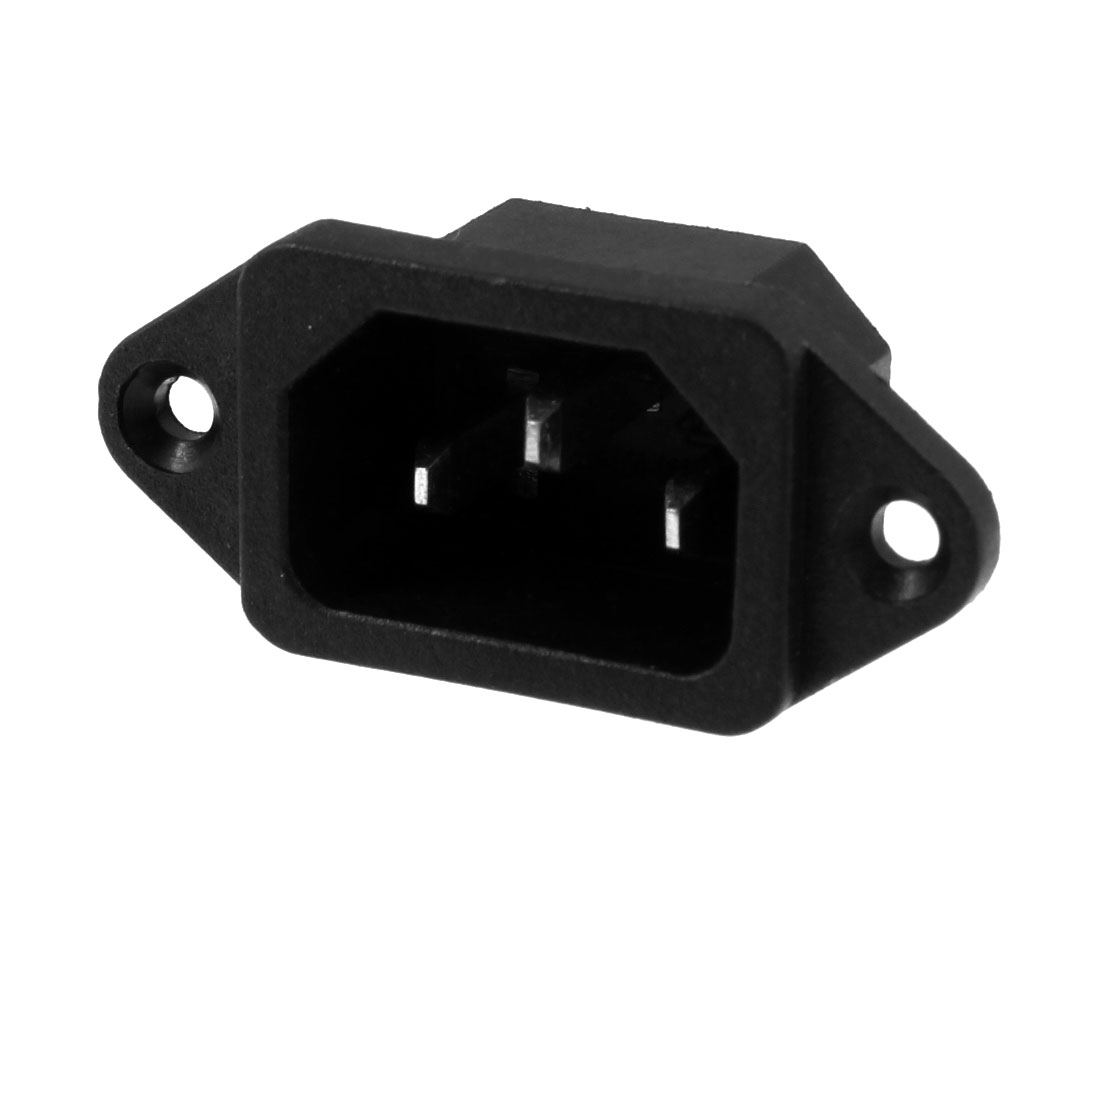 Male 3 Terminals Panel Mount C14 Power Plug Adapter Connector 250V 10A 250V 15A